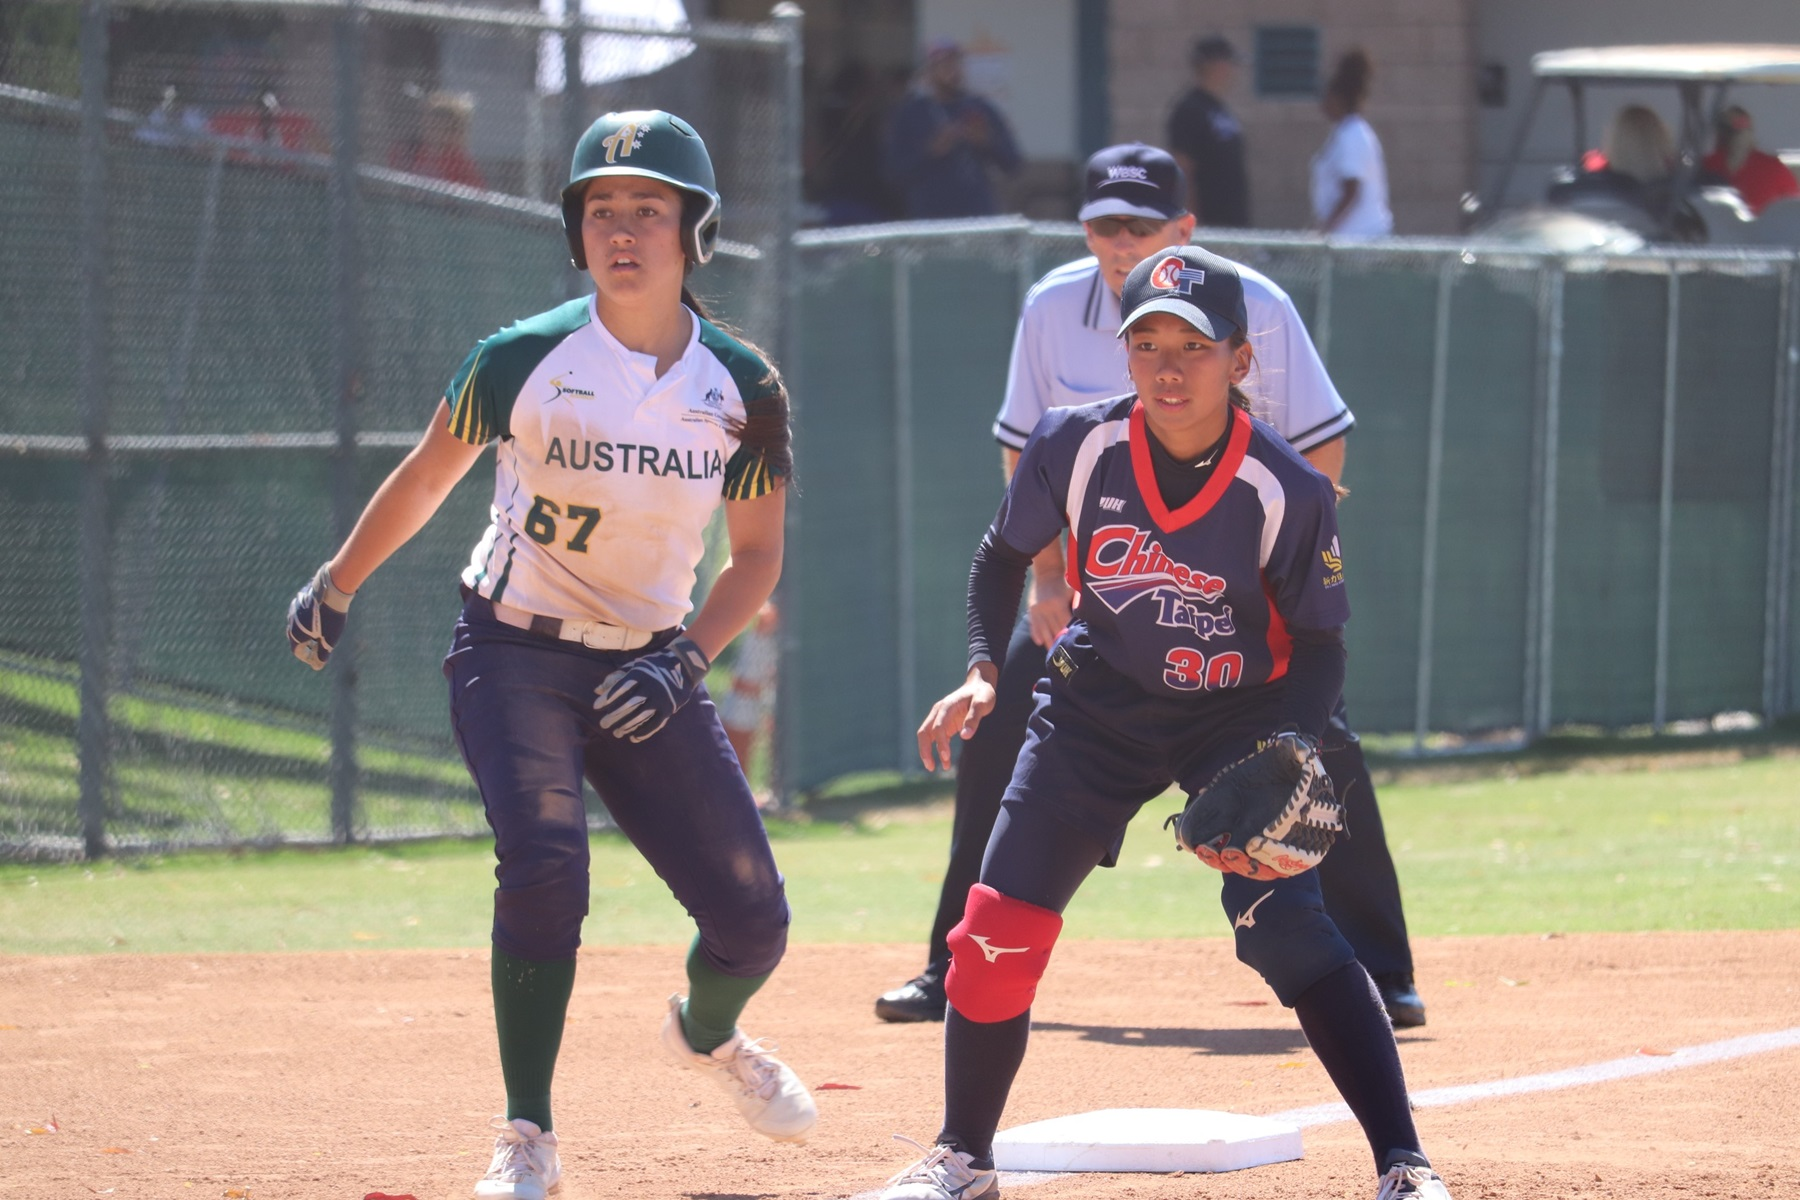 Mya Geros got two hits in the seventh